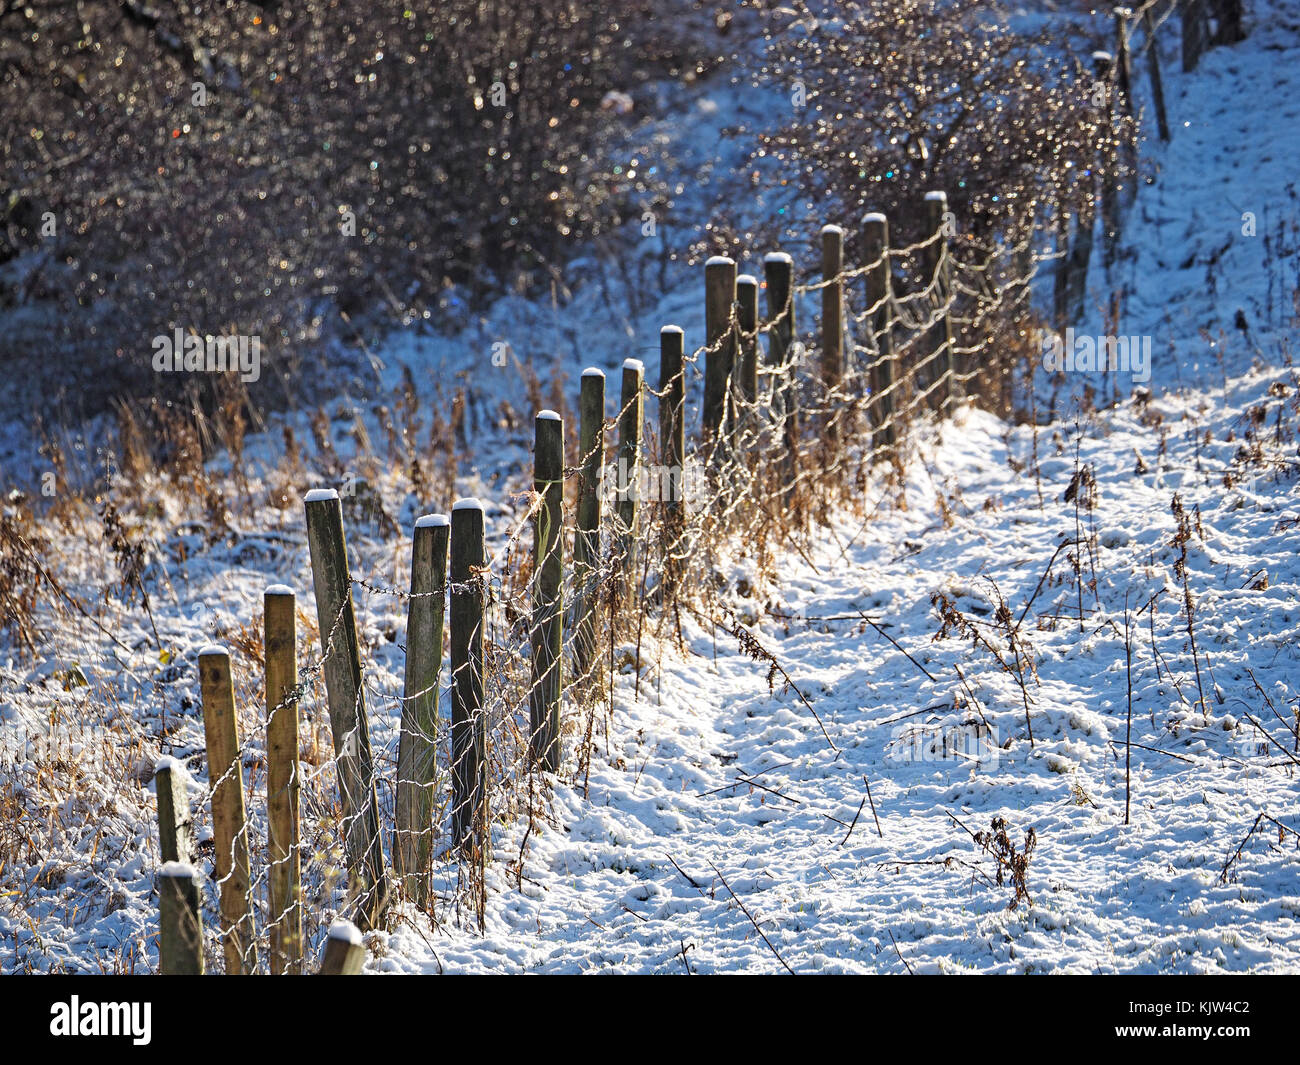 Cumbria, UK. 25th November, 2017. twinkling frost on shrubs and fence alongside snowy field as winter starts early - Stock Image